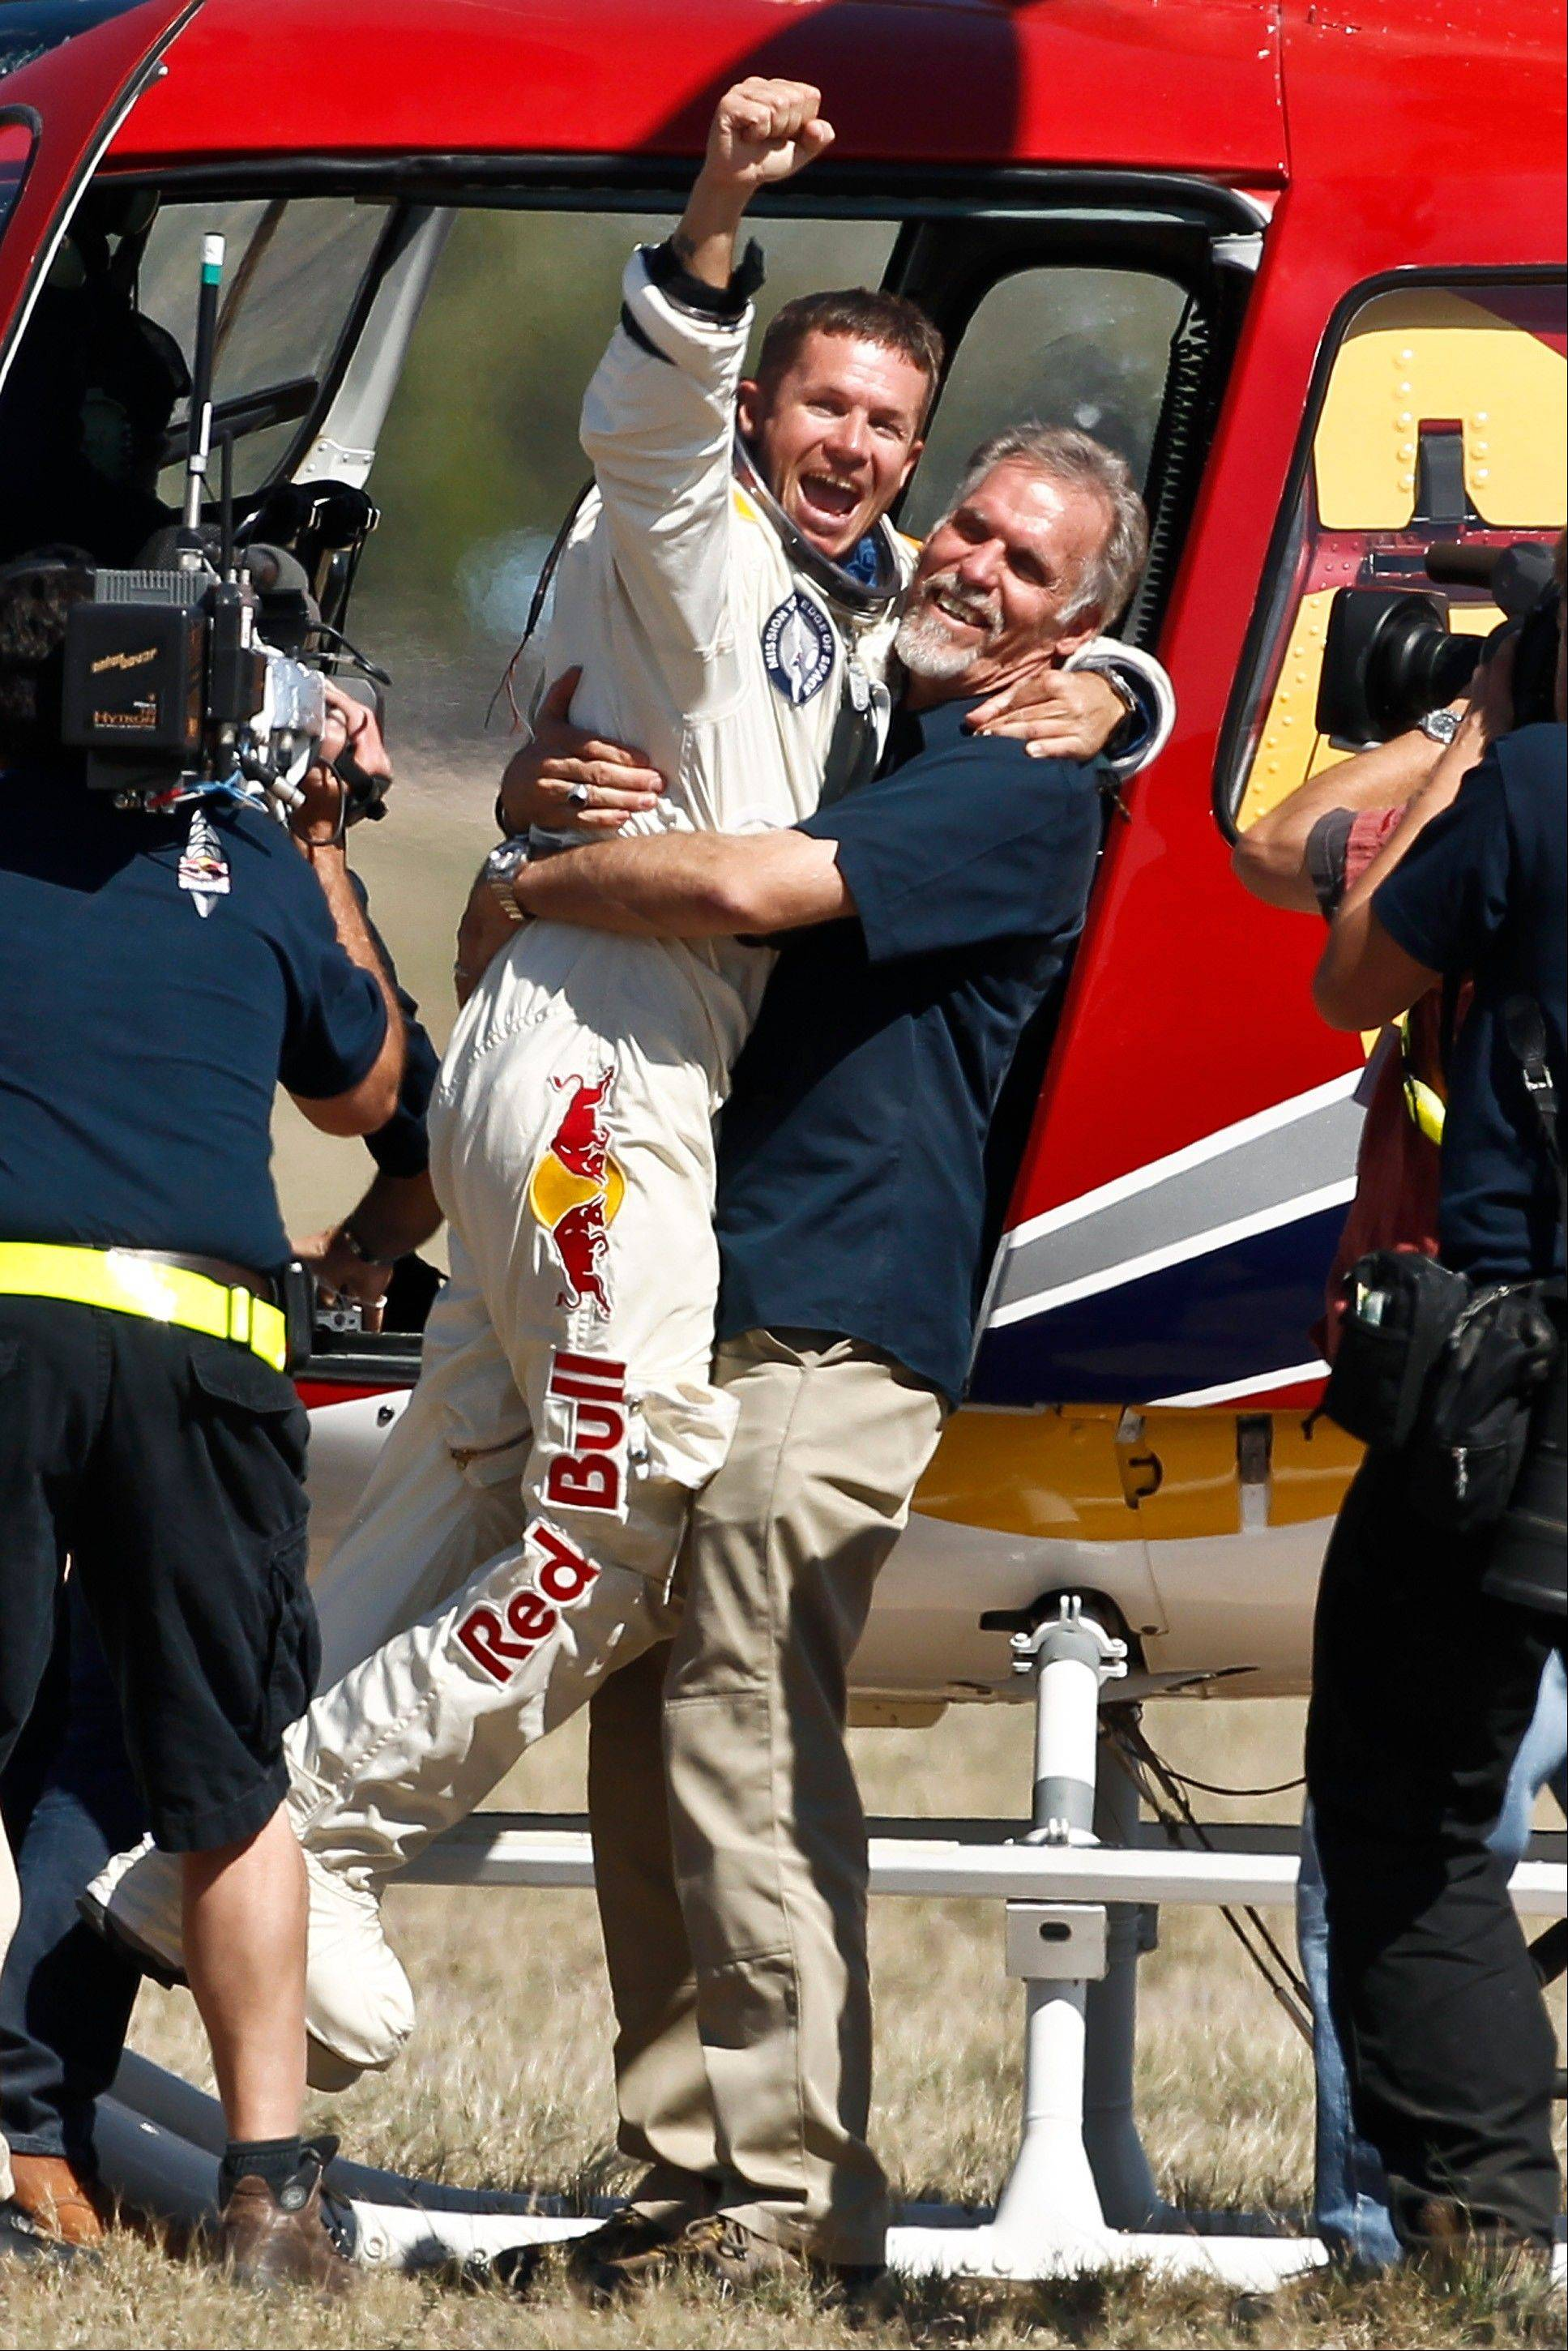 Felix Baumgartner, left, of Austria, celebrates with Art Thompson, Technical Project Director, after successfully jumping from a space capsule lifted by a helium balloon at a height of just over 128,000 feet above the Earth's surface, Sunday, Oct. 14, 2012, in Roswell, N.M. Baumgartner landed in the eastern New Mexico desert minutes after jumping from his capsule 28,000 feet (8,534 meters), or 24 miles (38.6-kilometer), above Earth.